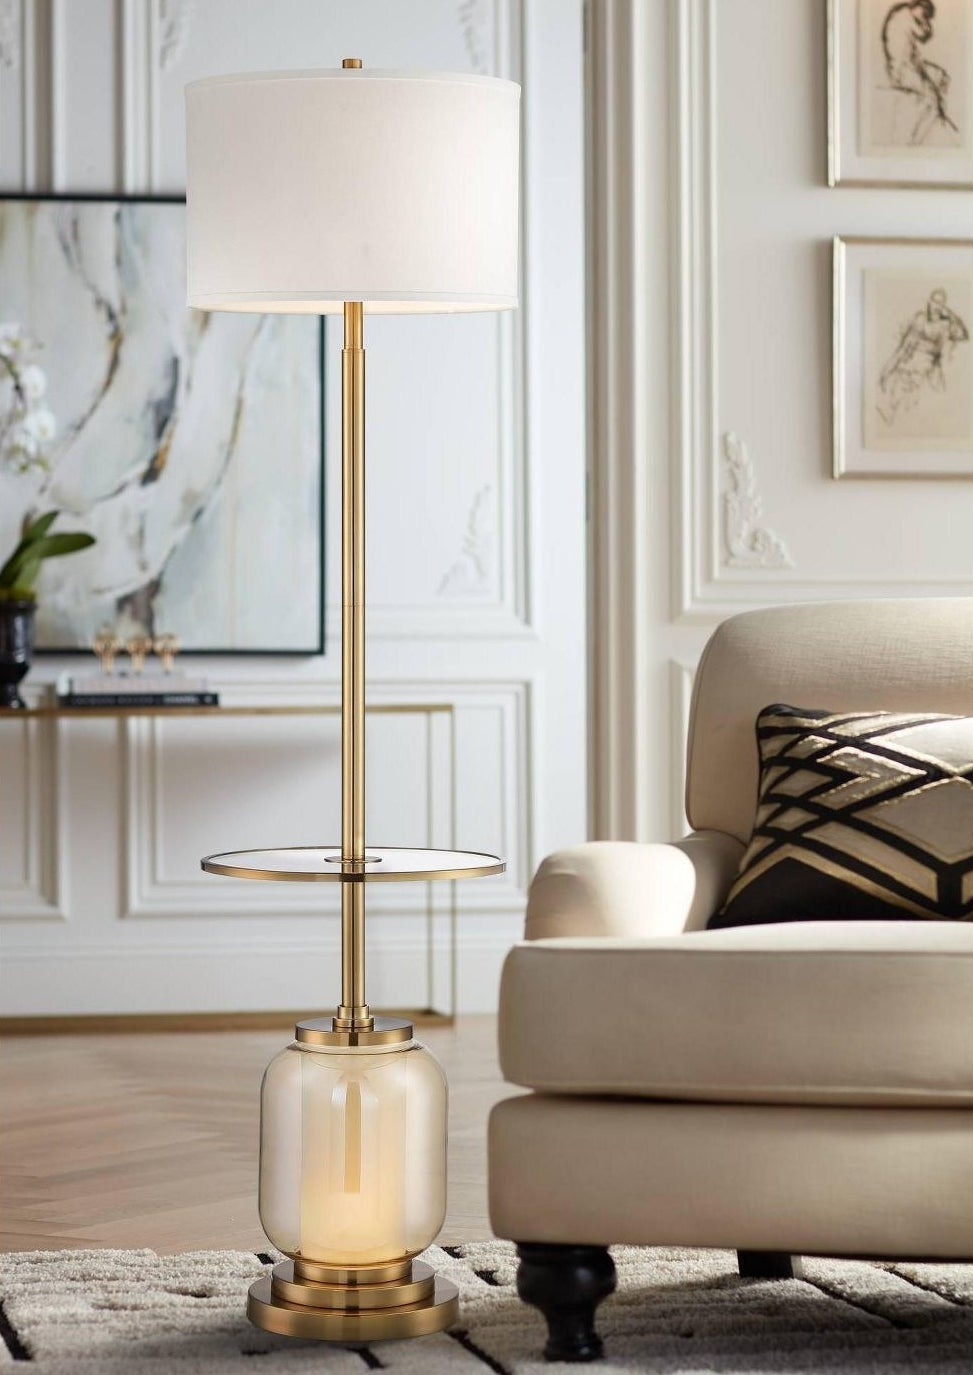 a floor lamp with a side table at the base